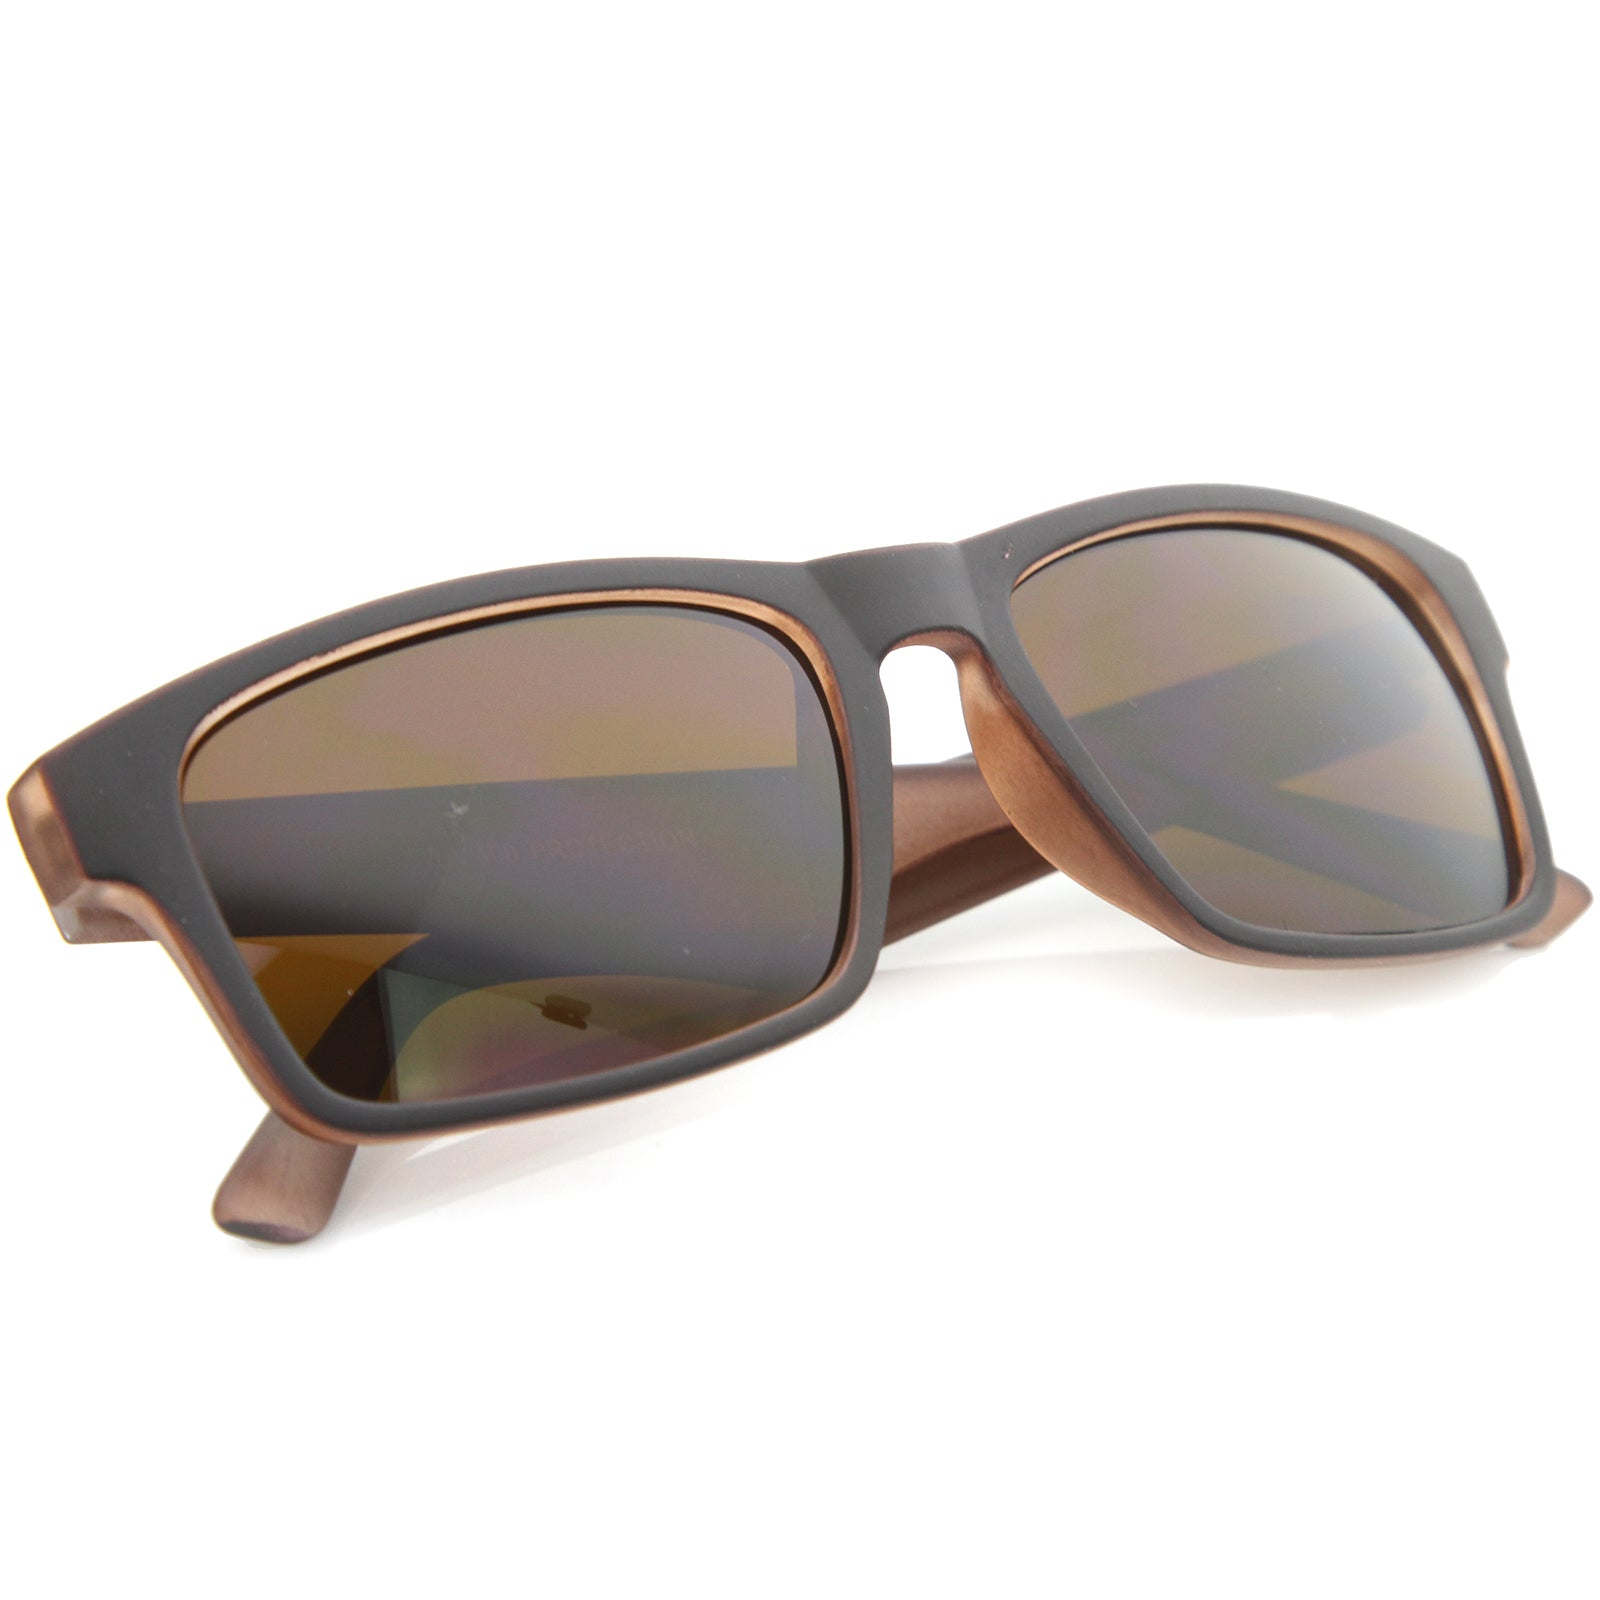 Mens Horn Rimmed Sunglasses With UV400 Protected Composite Lens - sunglass.la - 8